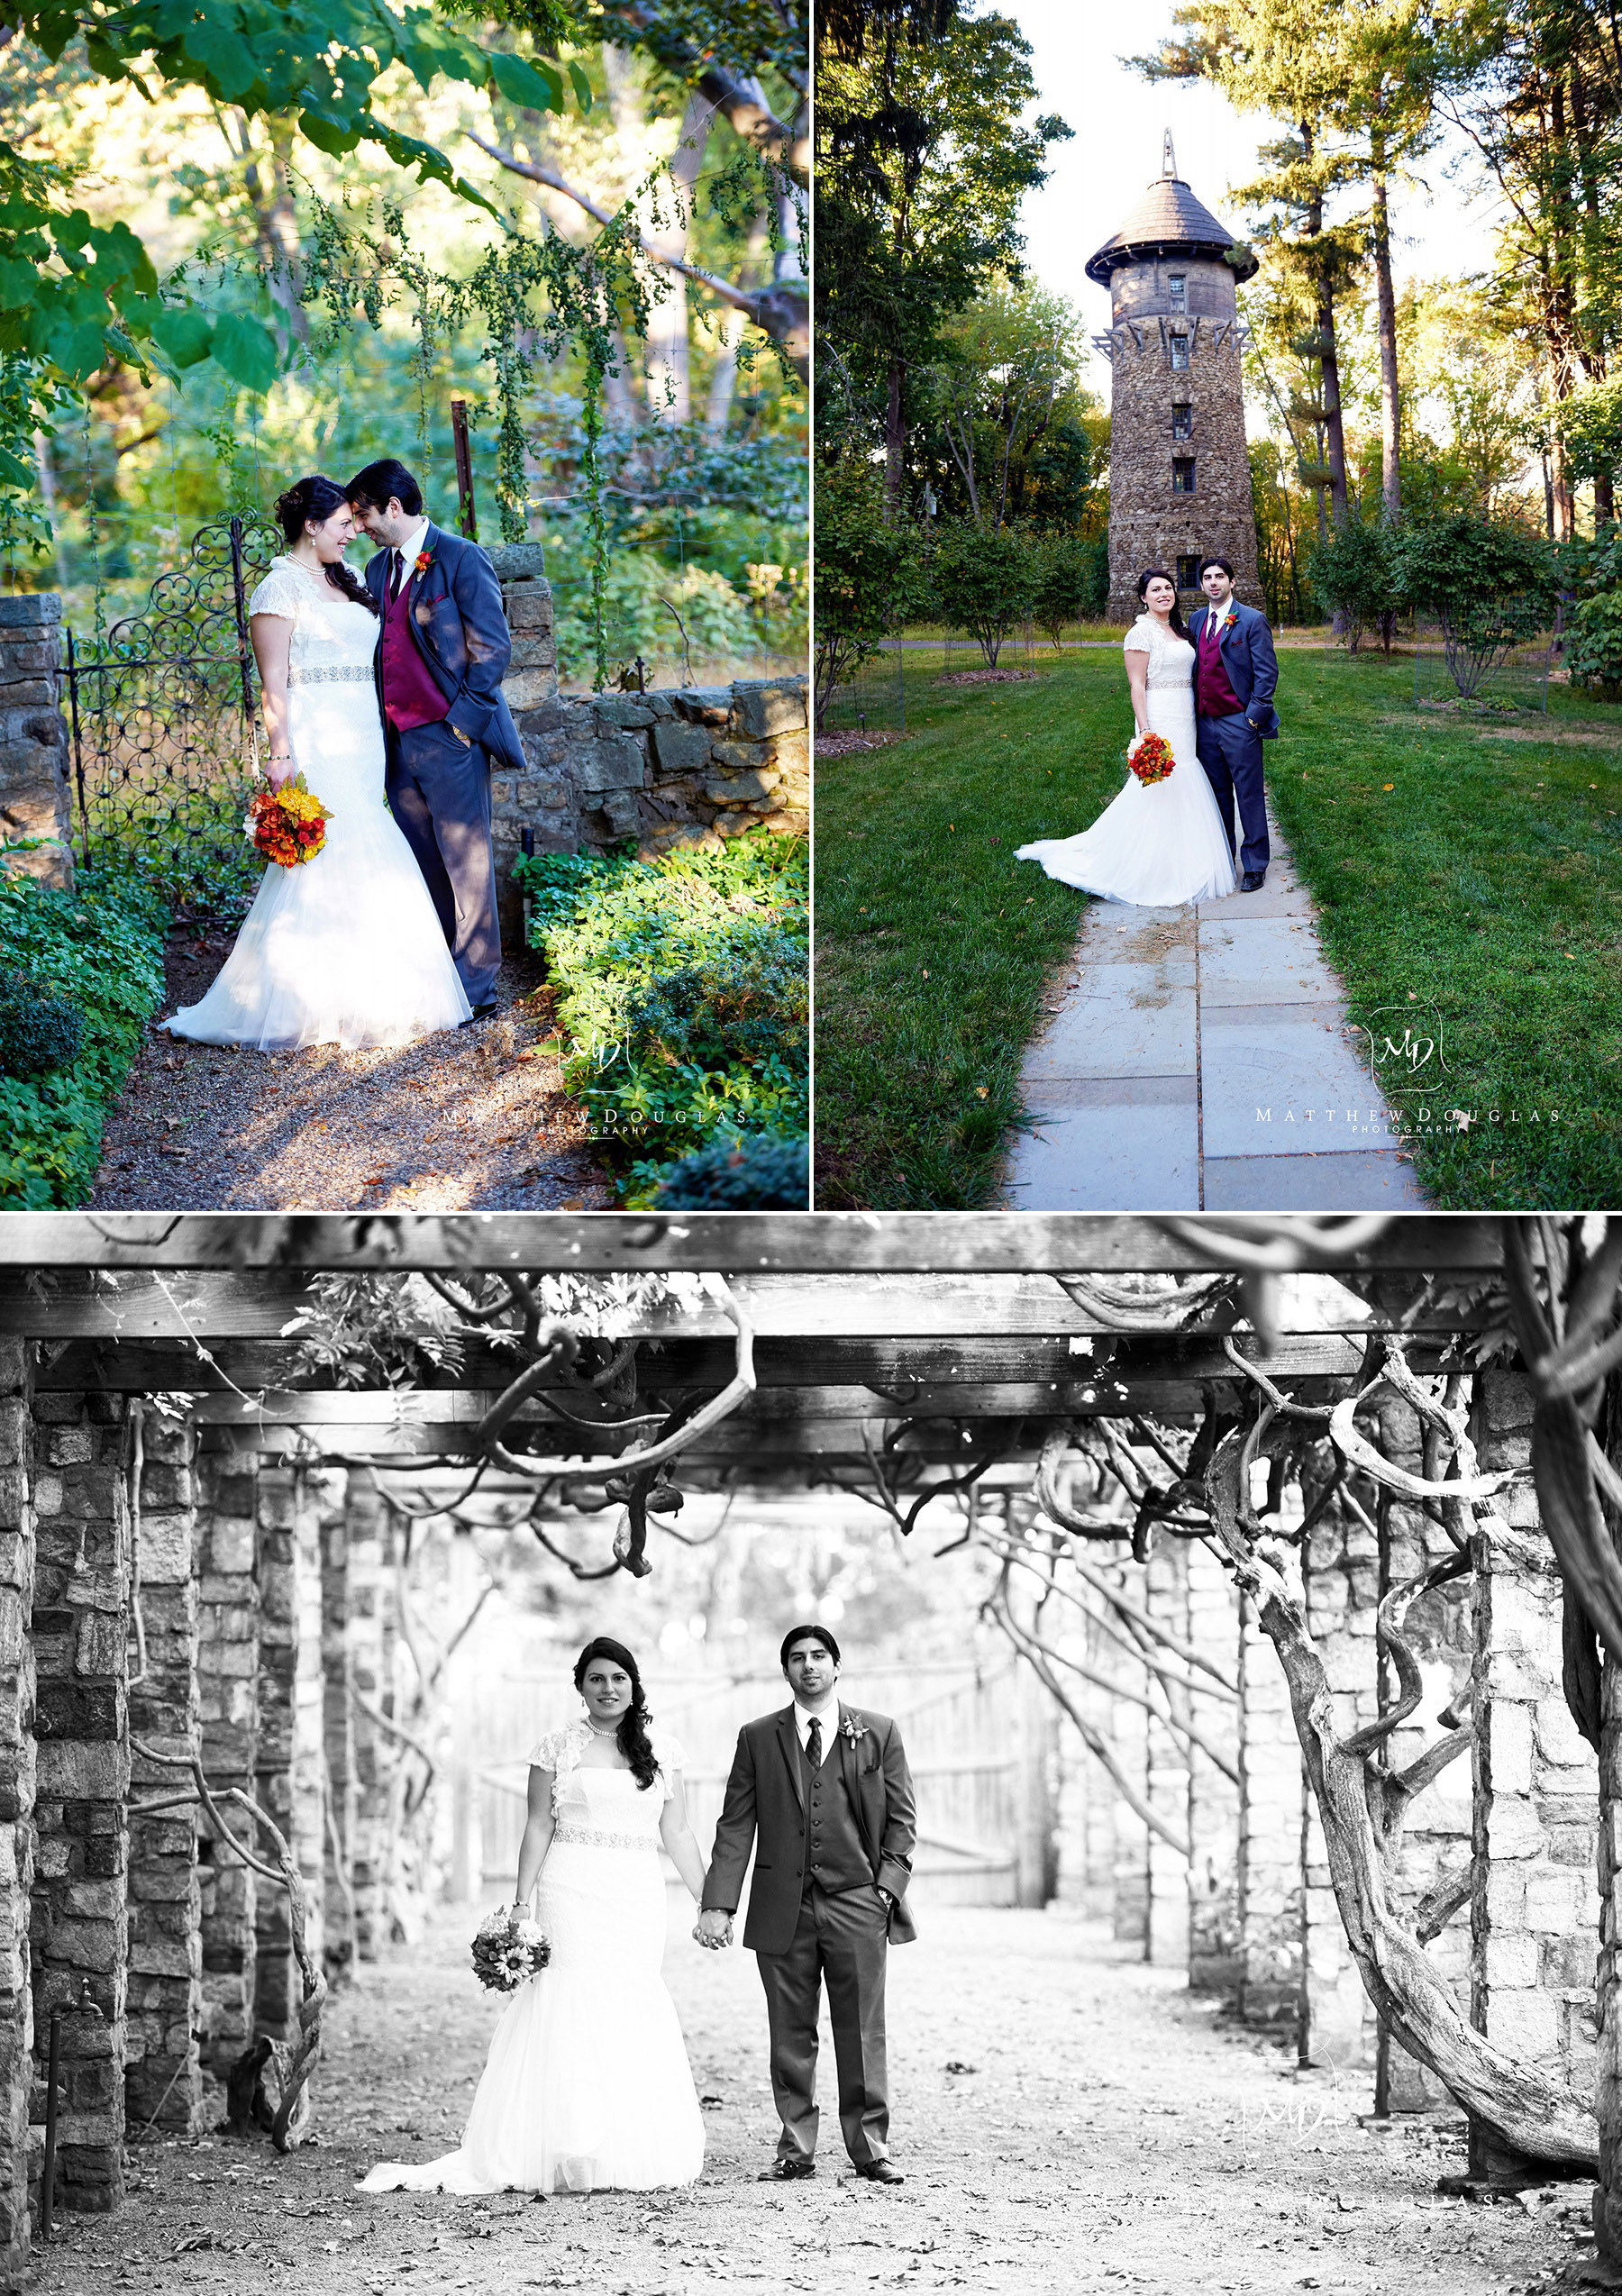 Wedding photos at the olde mill inn basking ridge nj